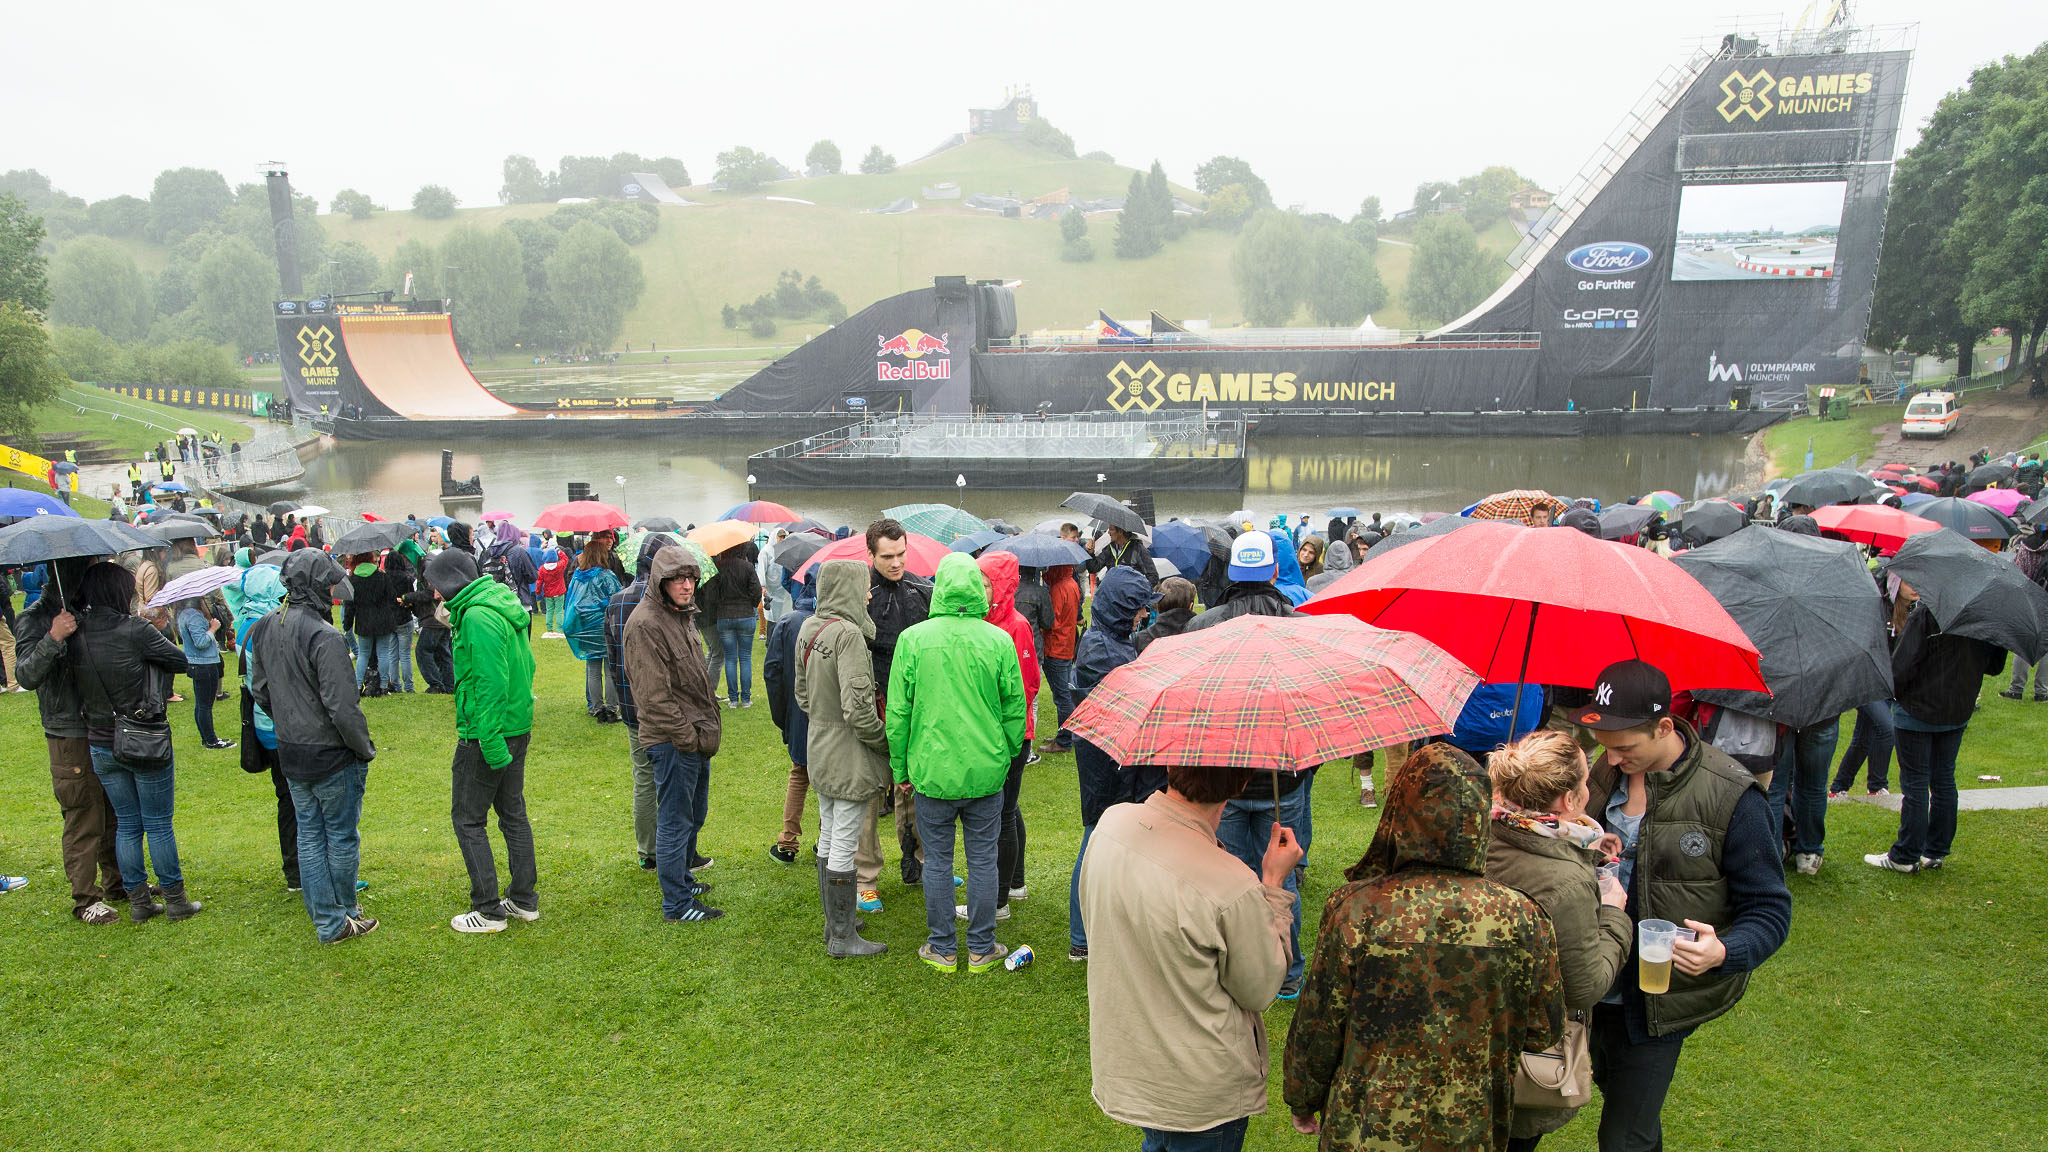 Rain washed out the Skateboard Big Air event and others at X Games Munich Saturday.